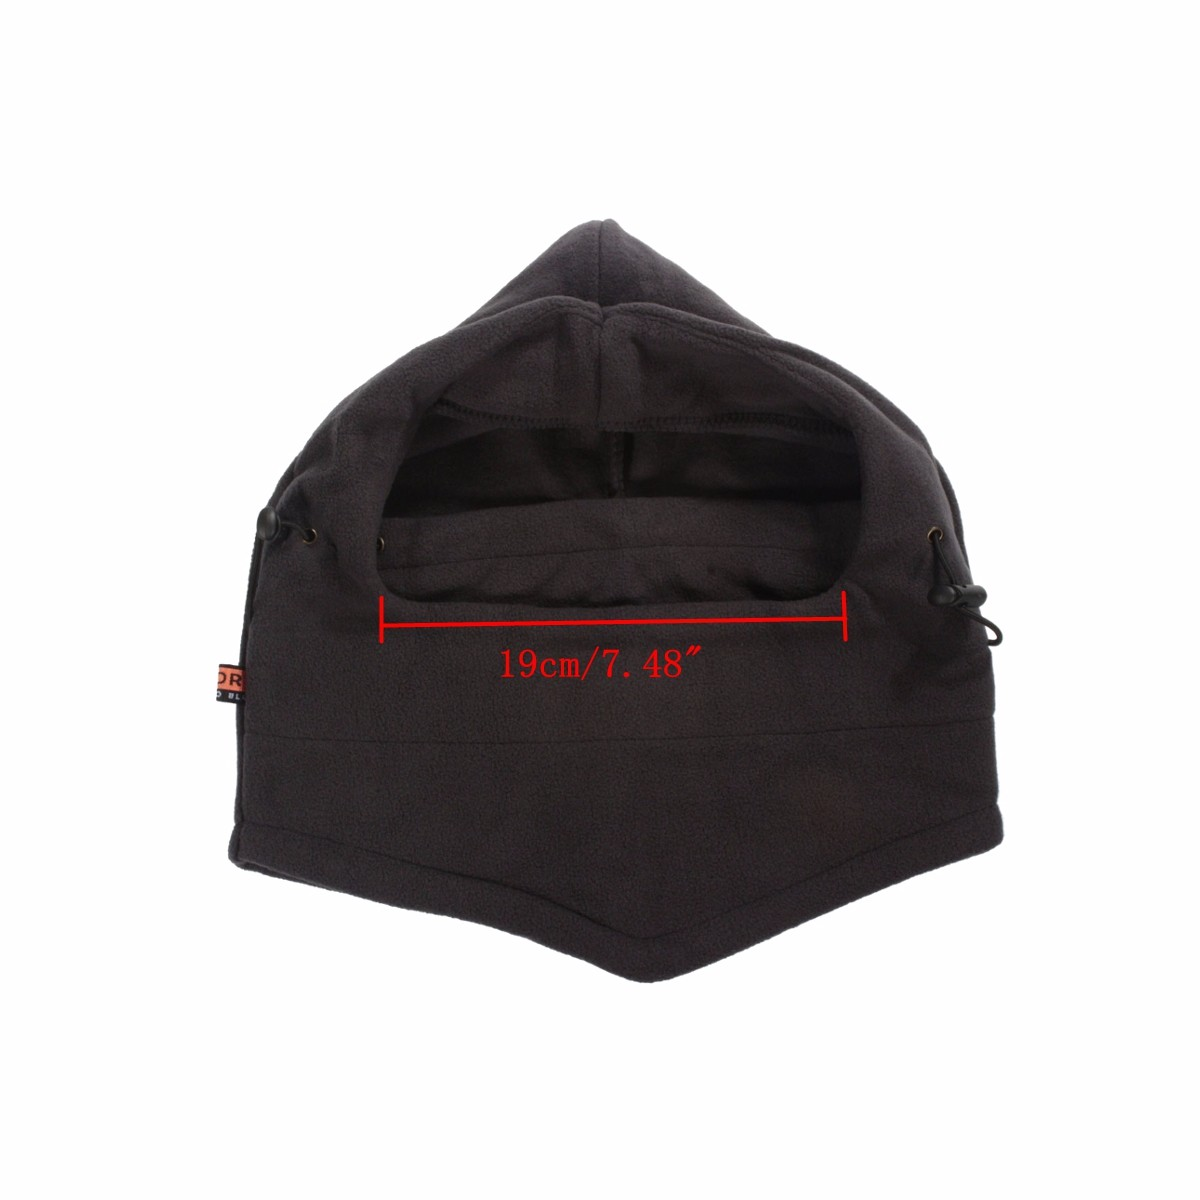 Motorcycle Full Face Mask Cap Ski Winter Warm Windproof Balaclava Cover Neck Hat